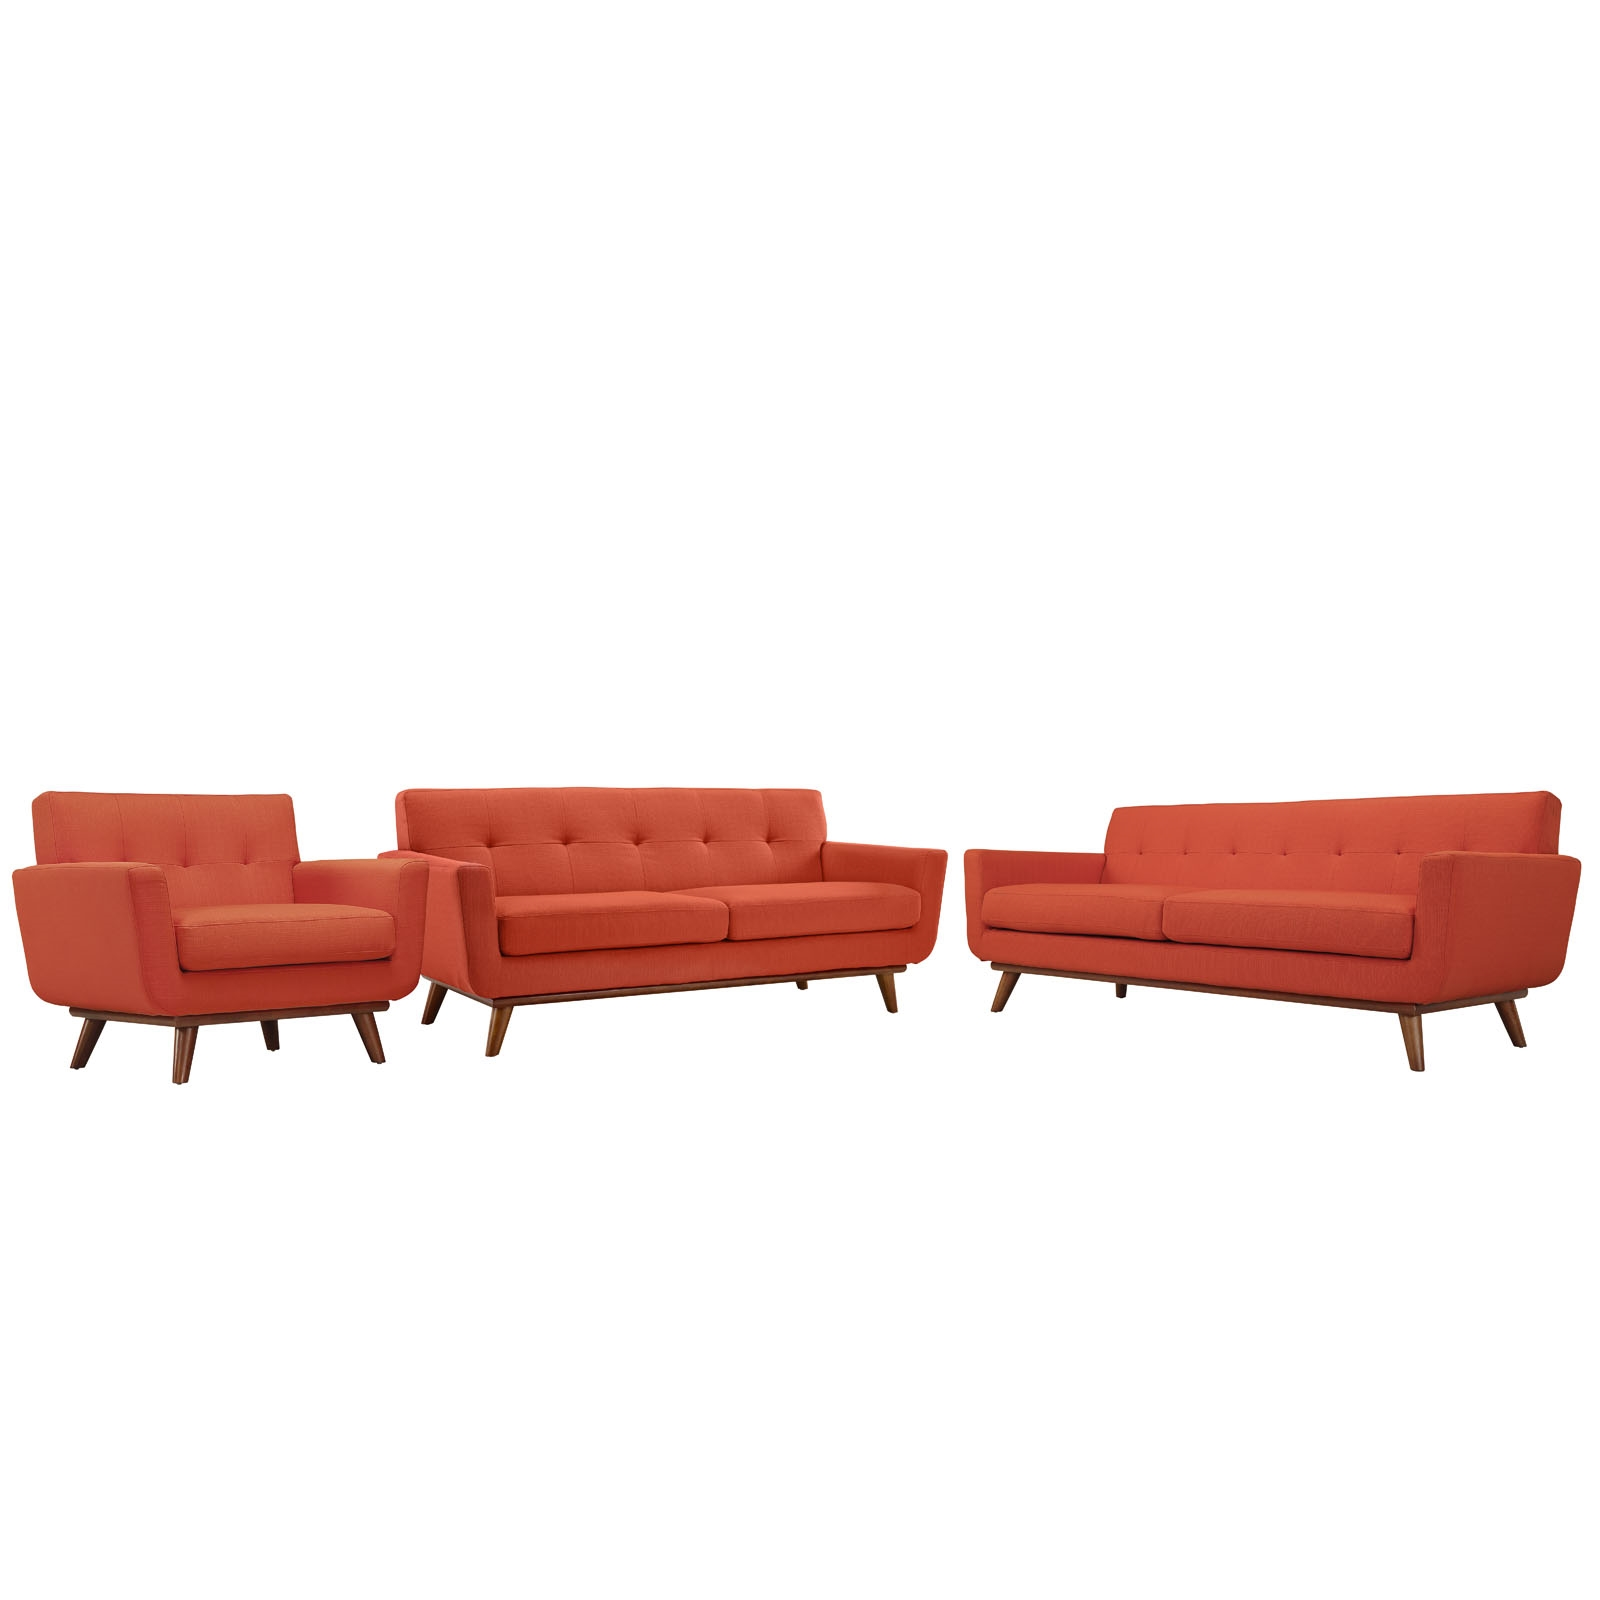 Engage Sofa Loveseat and Armchair Set of 3 in Atomic Red